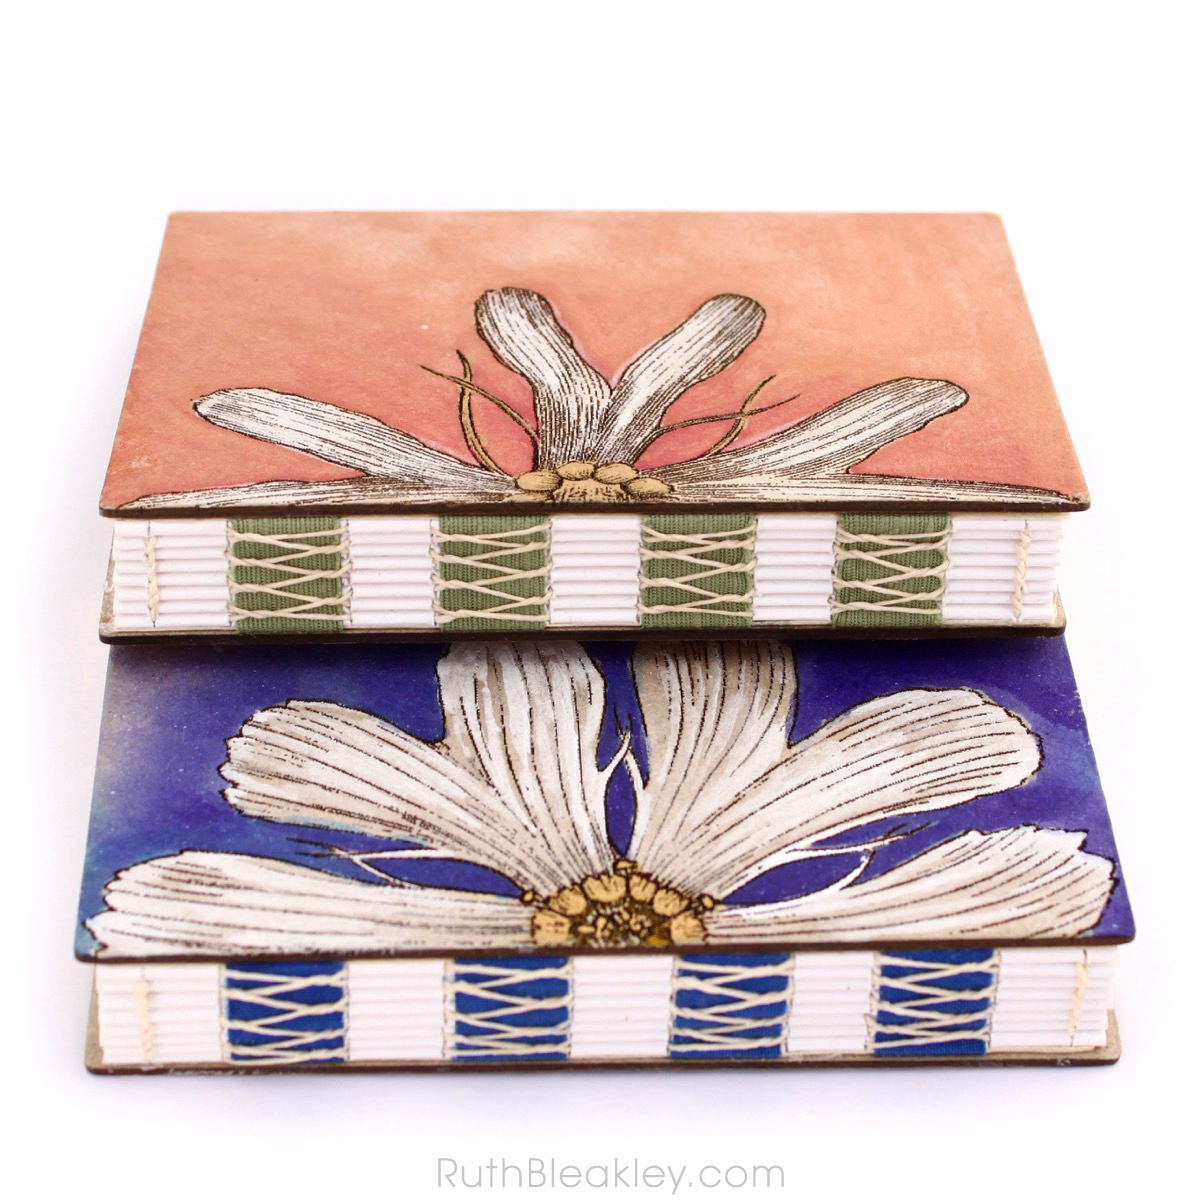 Handpainted Nature Journals sewn with French Link Stitch and engraved with the Glowforge from Book artist Ruth Bleakley - 5